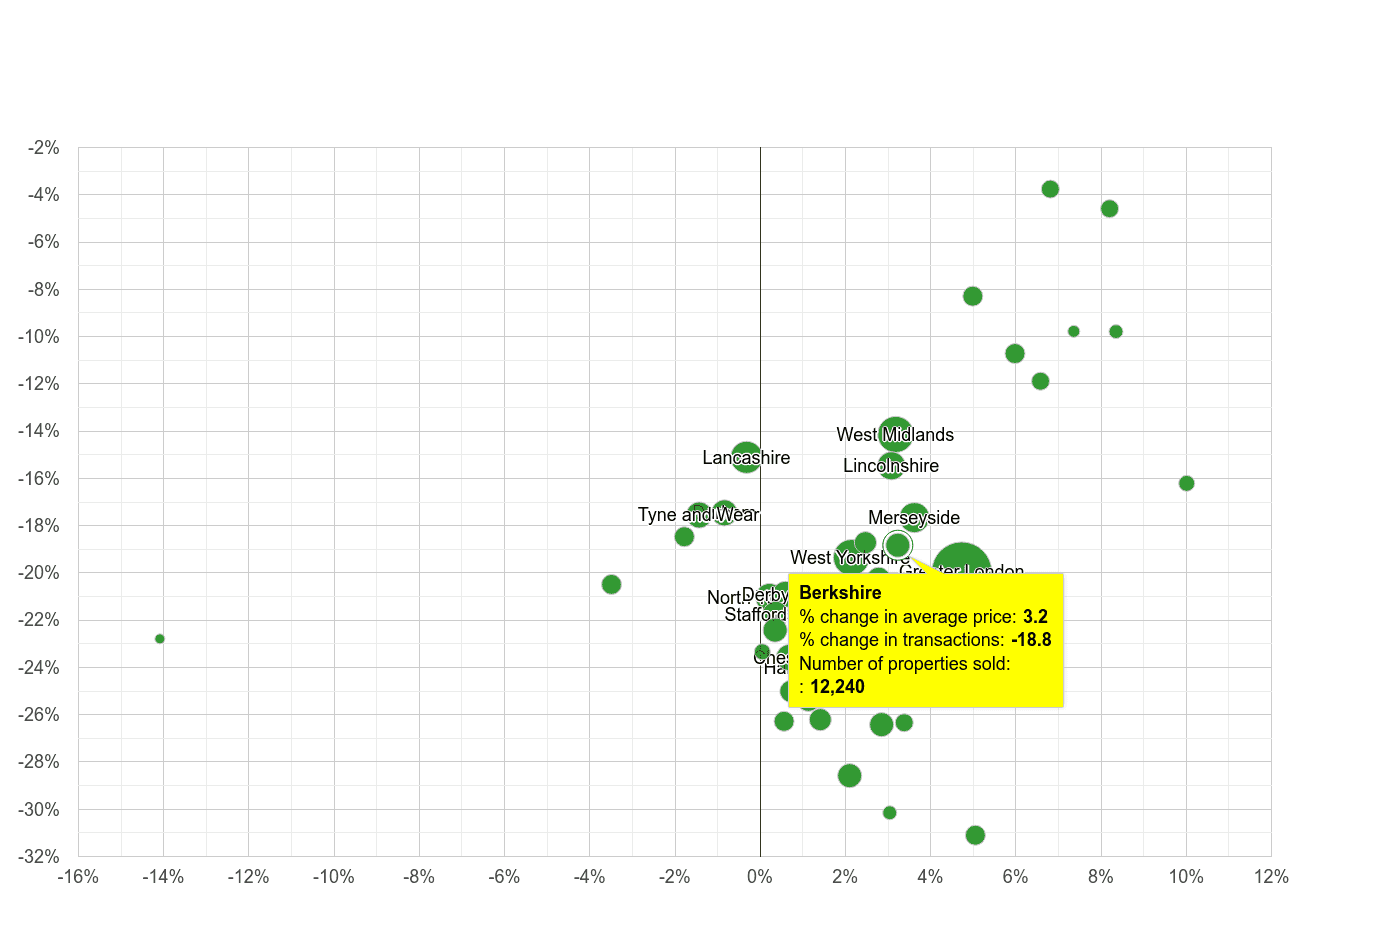 Berkshire property price and sales volume change relative to other counties